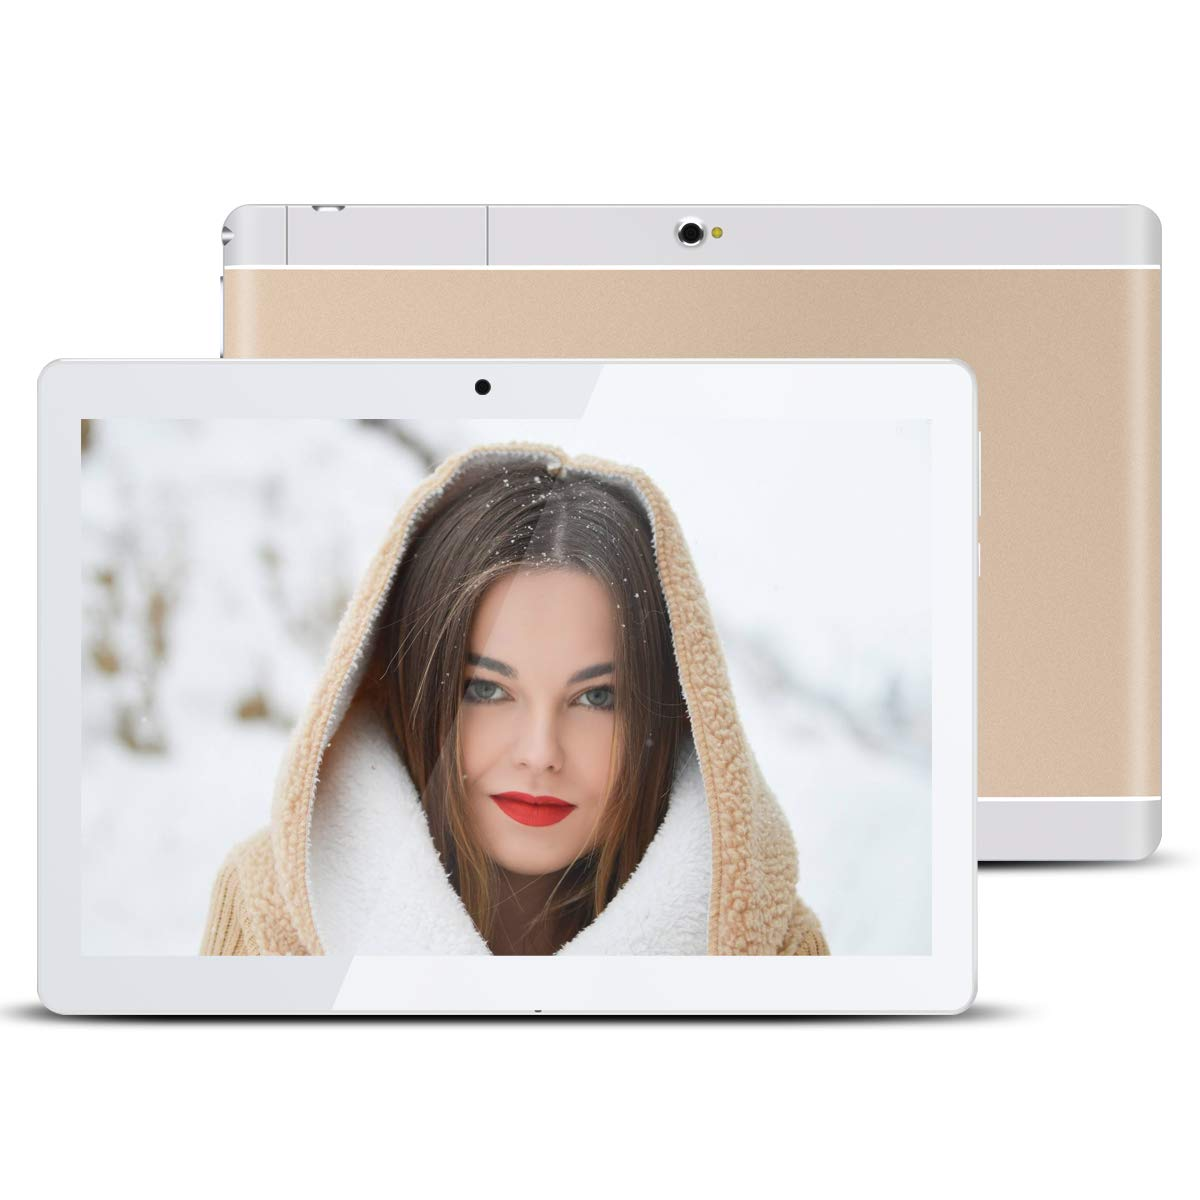 """Kivors 10.1"""" Inch Touch Screen Tablet - Android 7.0 Nougat-2GB RAM + 32GB ROM - Quad Core Unlocked WiFi Tablets - IPS 1280x800 HD - Dual Camera - GPS WiFi Android Tablets(Gold)"""